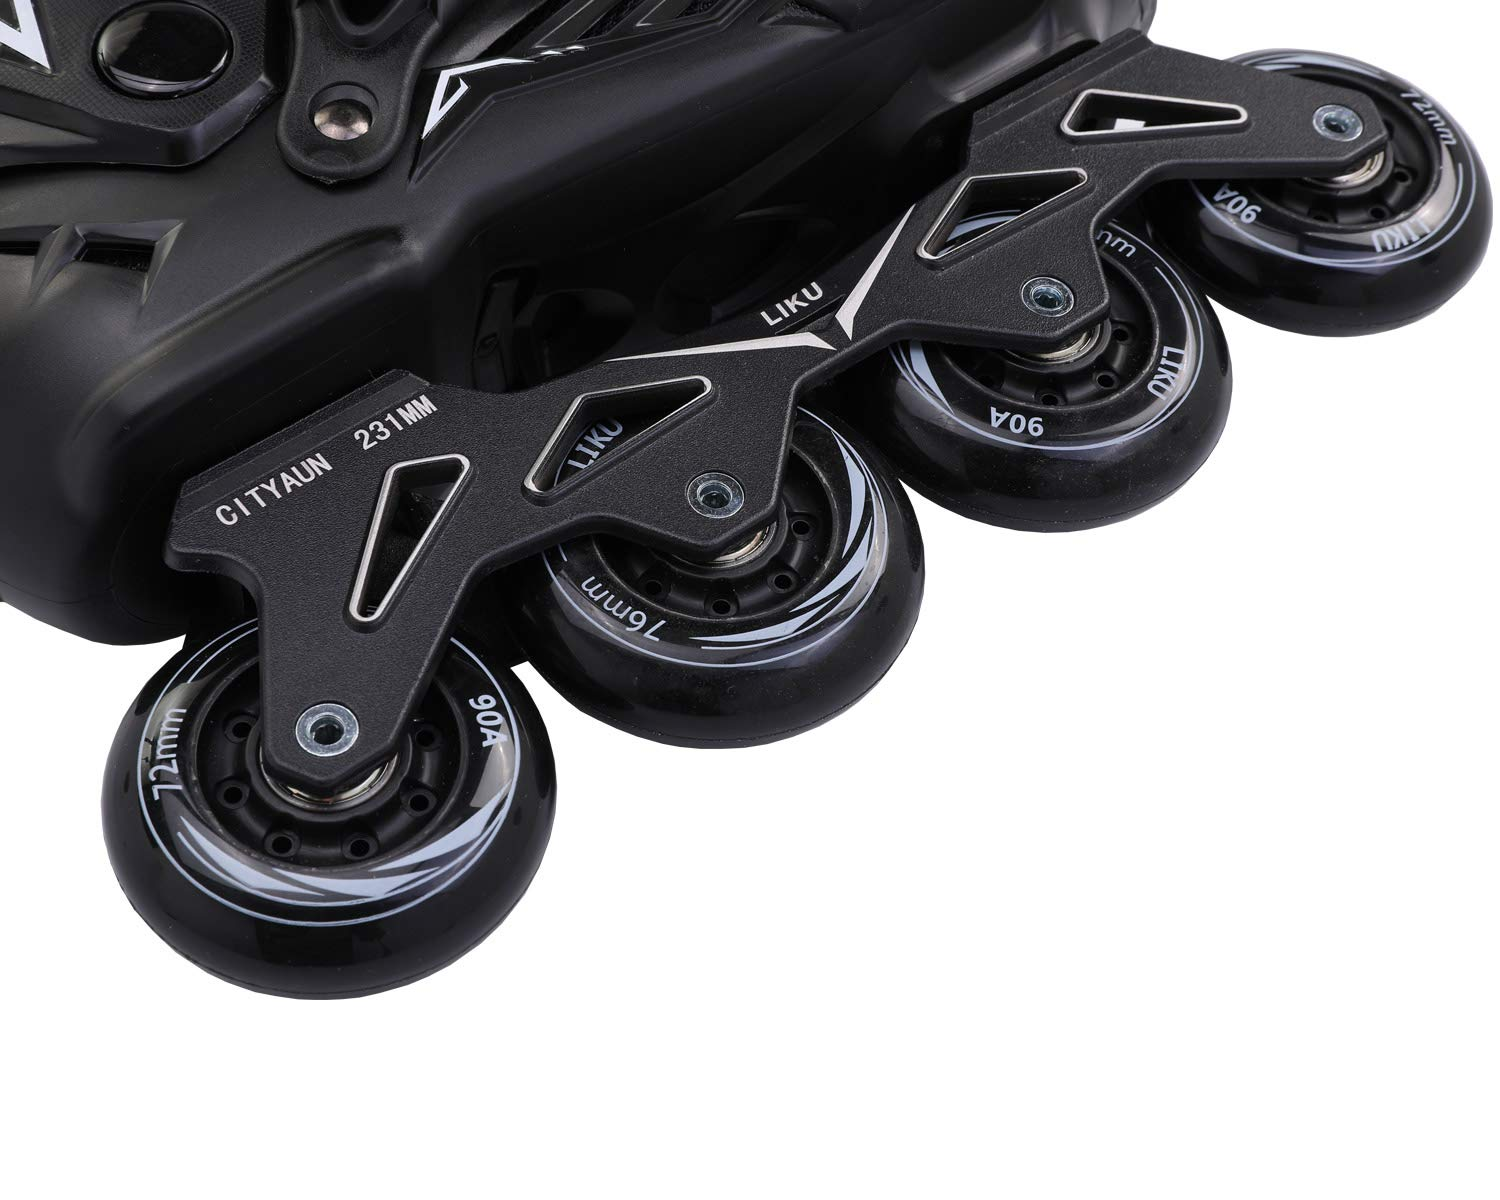 LIKU Fitness Professional Inline Roller Skates Women Men Adult Youth Black (Men 6.5,Women 7.5) by LIKU (Image #8)